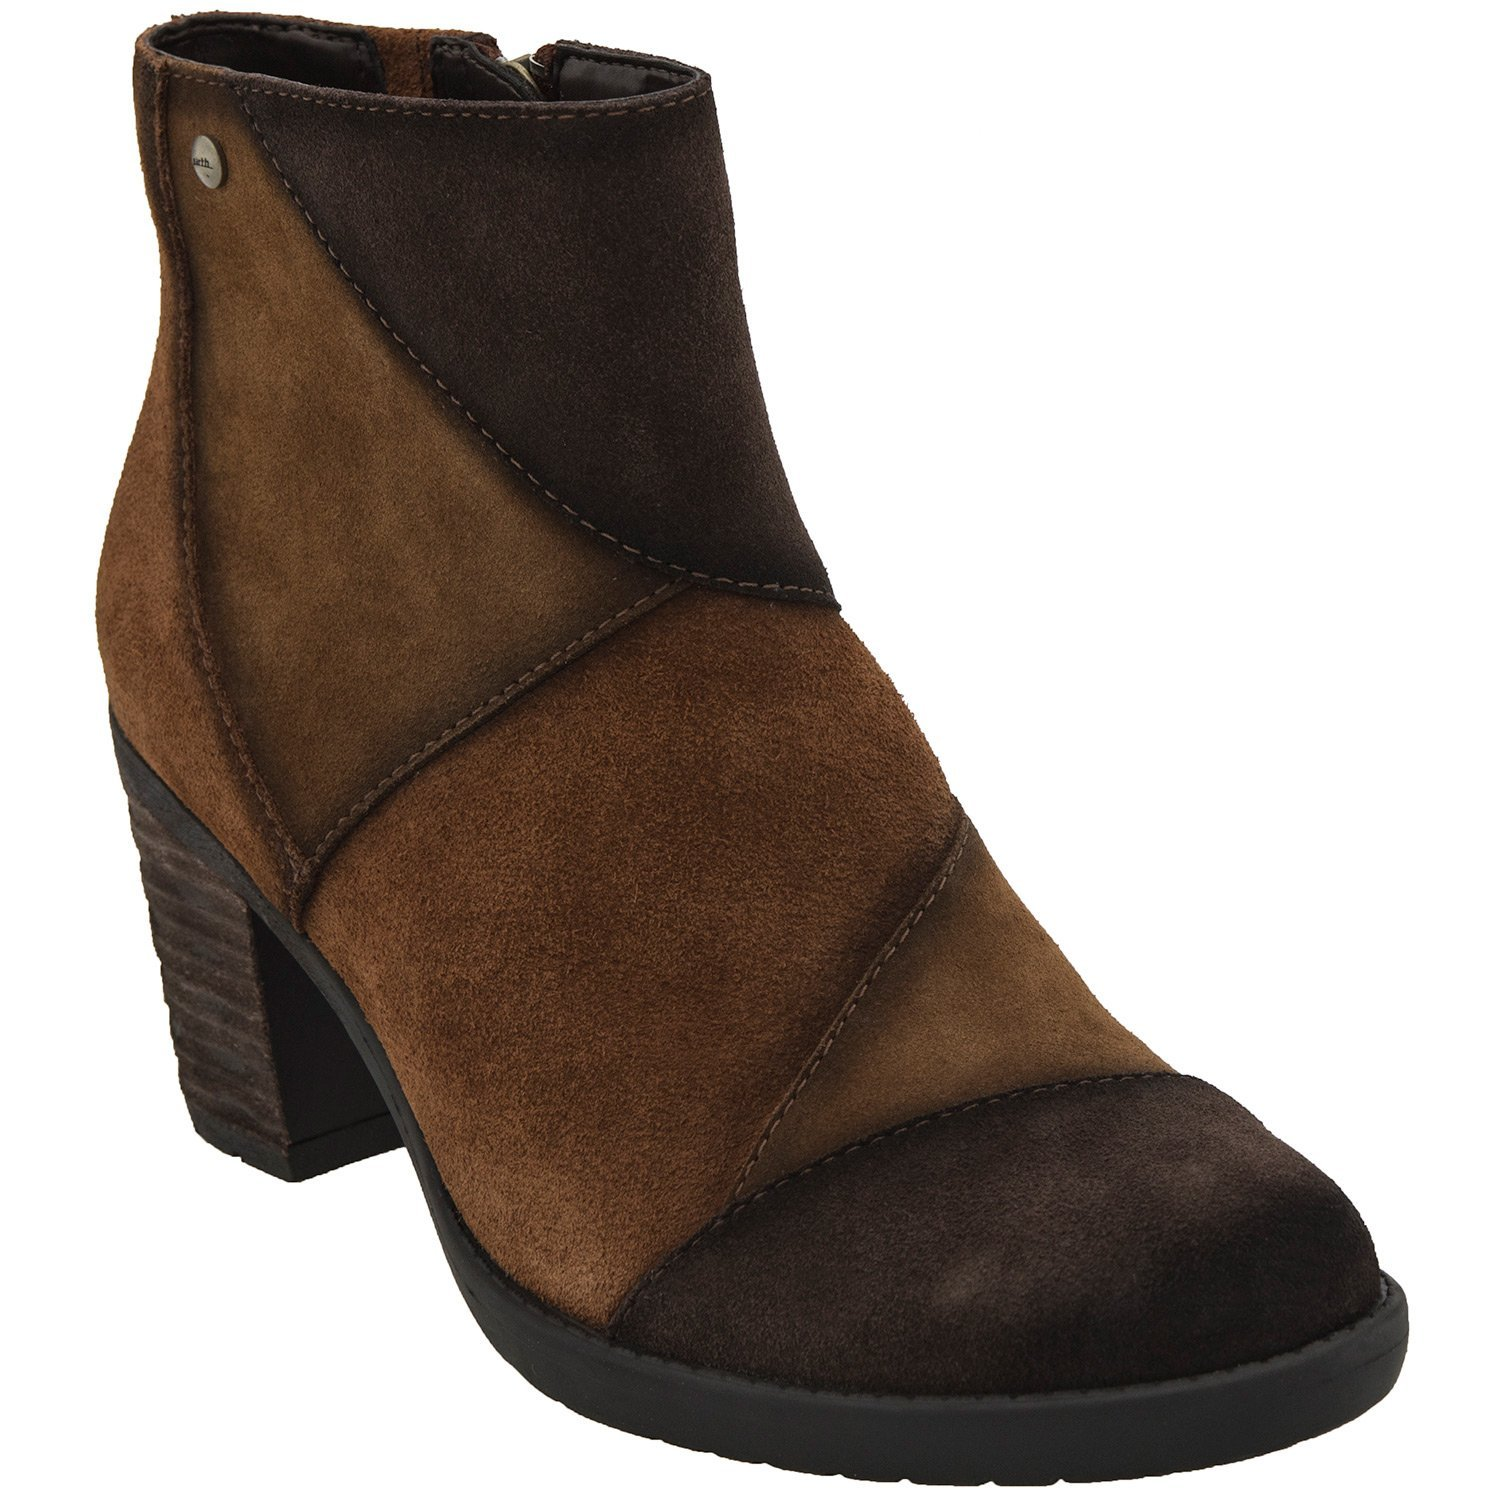 Earth Womens Malta Short Boot B005BE95JC 6.5 B(M) US|Cognac Multi Suede/Water Resistant